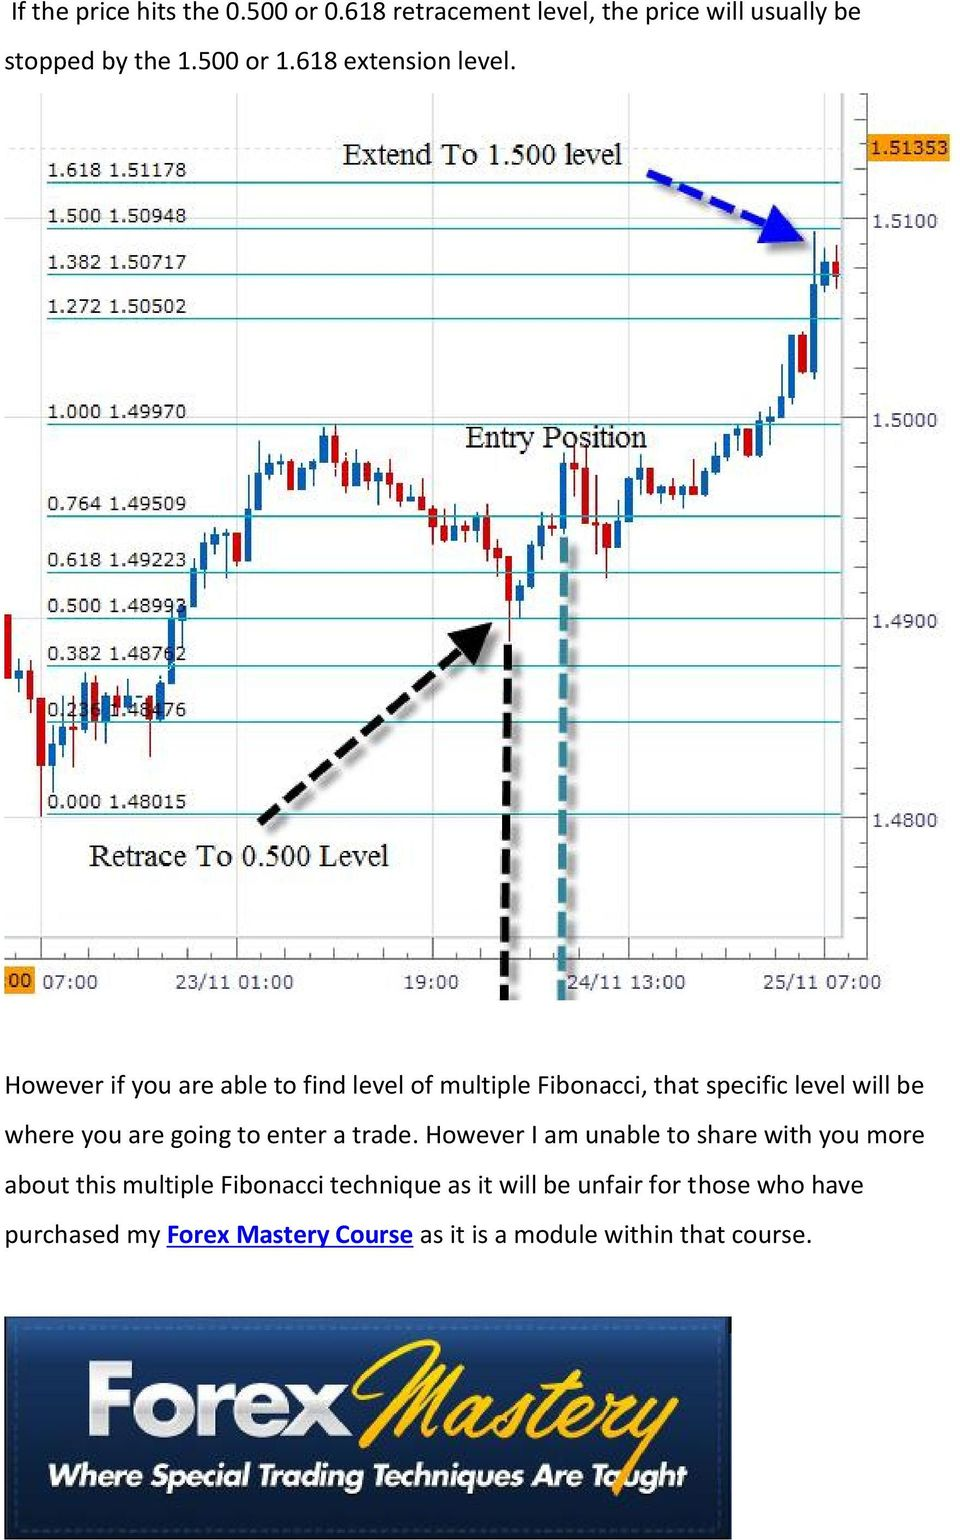 However if you are able to find level of multiple Fibonacci, that specific level will be where you are going to